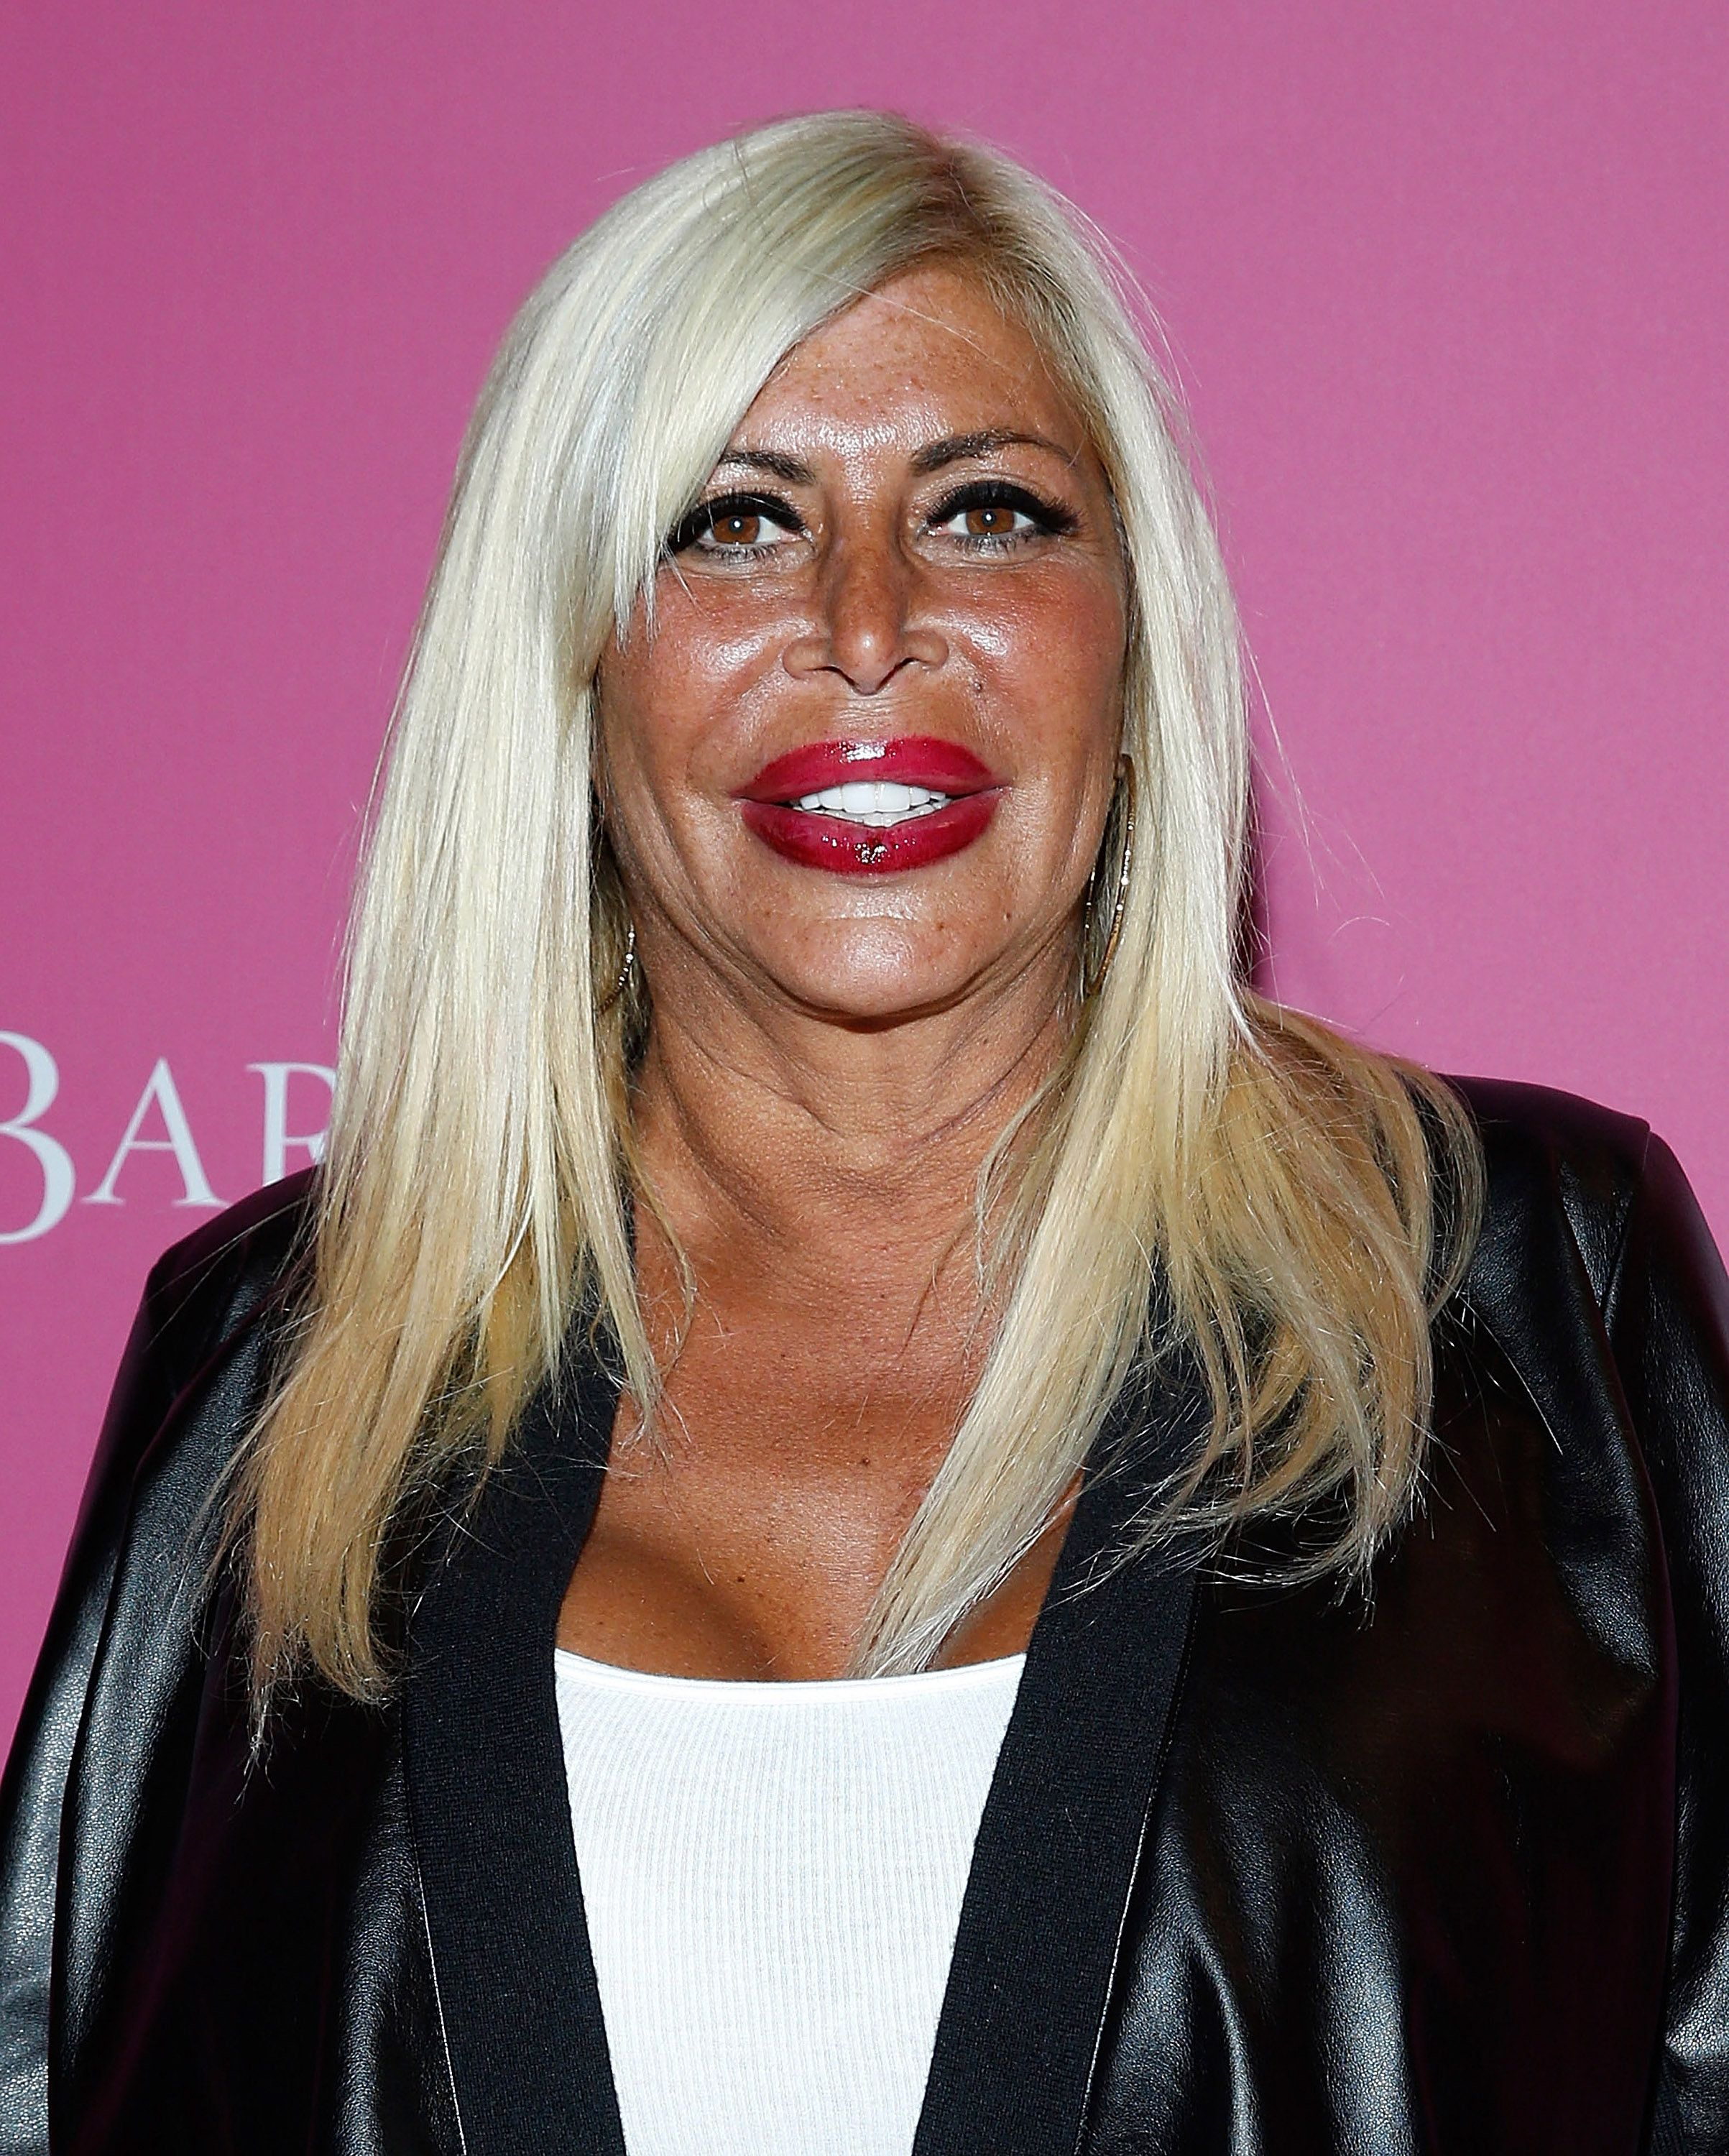 NEW YORK, NY - MAY 13:  Angela 'Big Ang' Raiola attends OK! Magazine's So Sexy NYC event at HAUS Nightclub on May 13, 2015 in New York City.  (Photo by John Lamparski/WireImage)